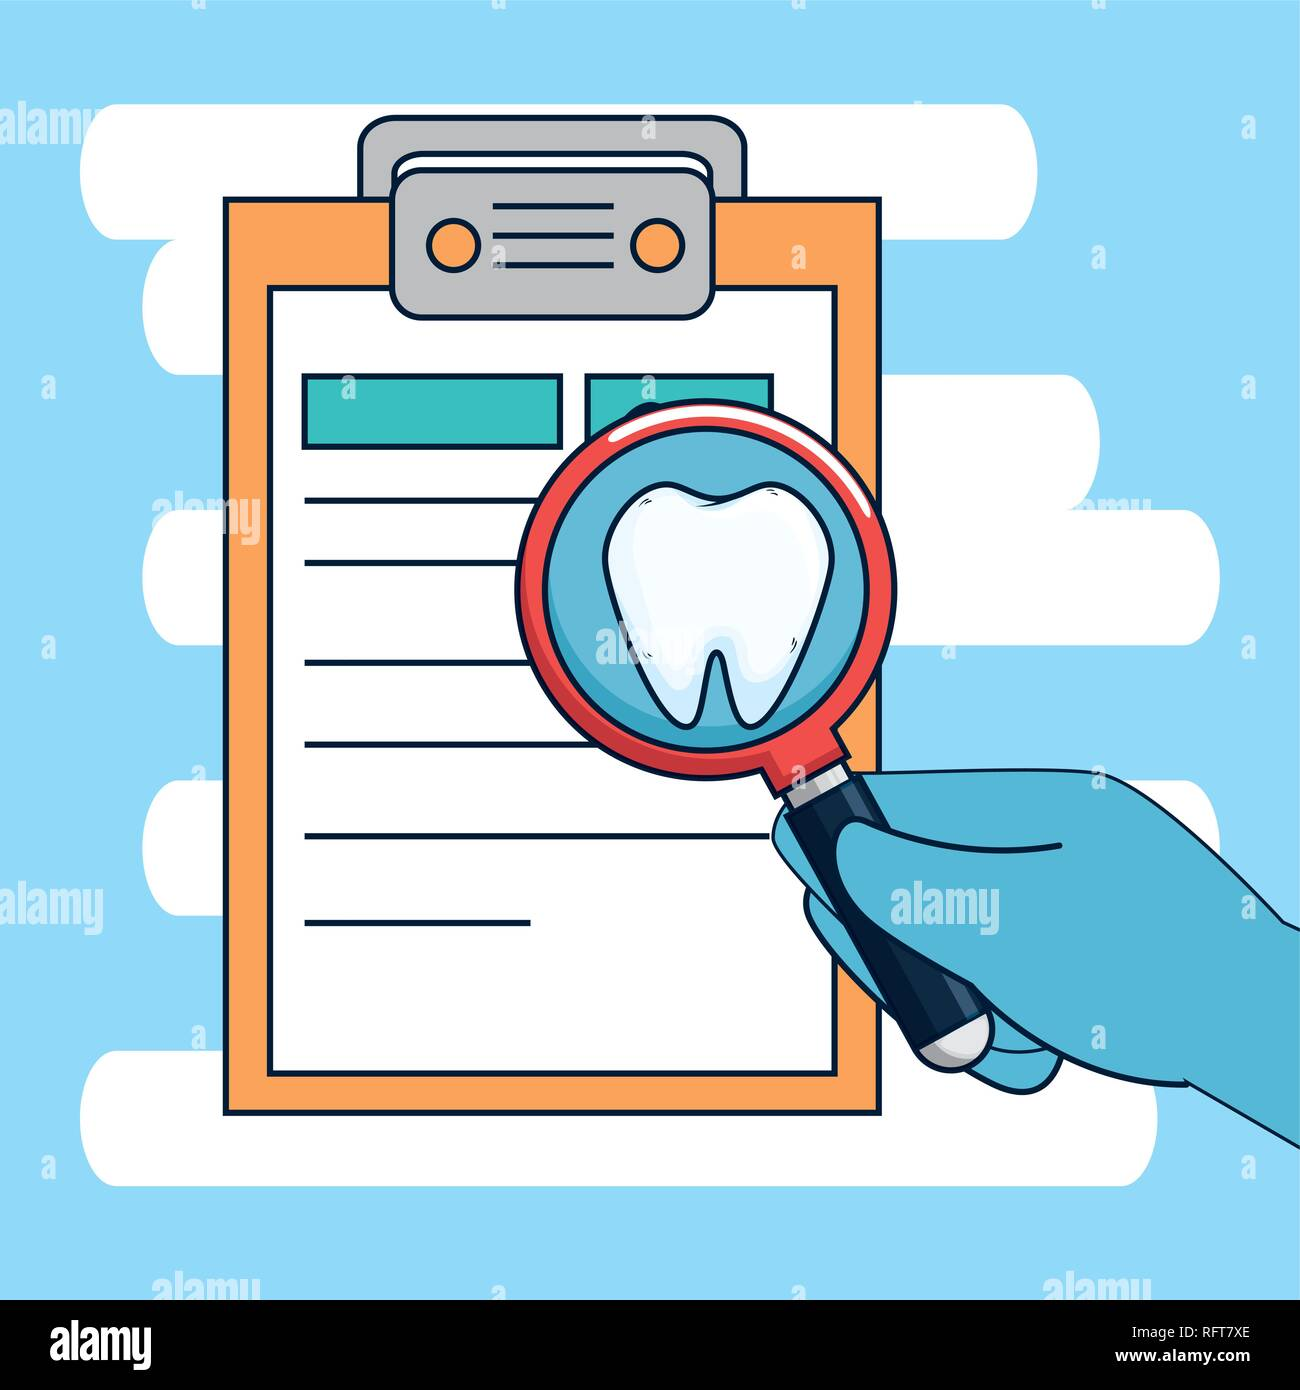 dentistry diagnosis with medicine treatment and magnifying glass - Stock Image